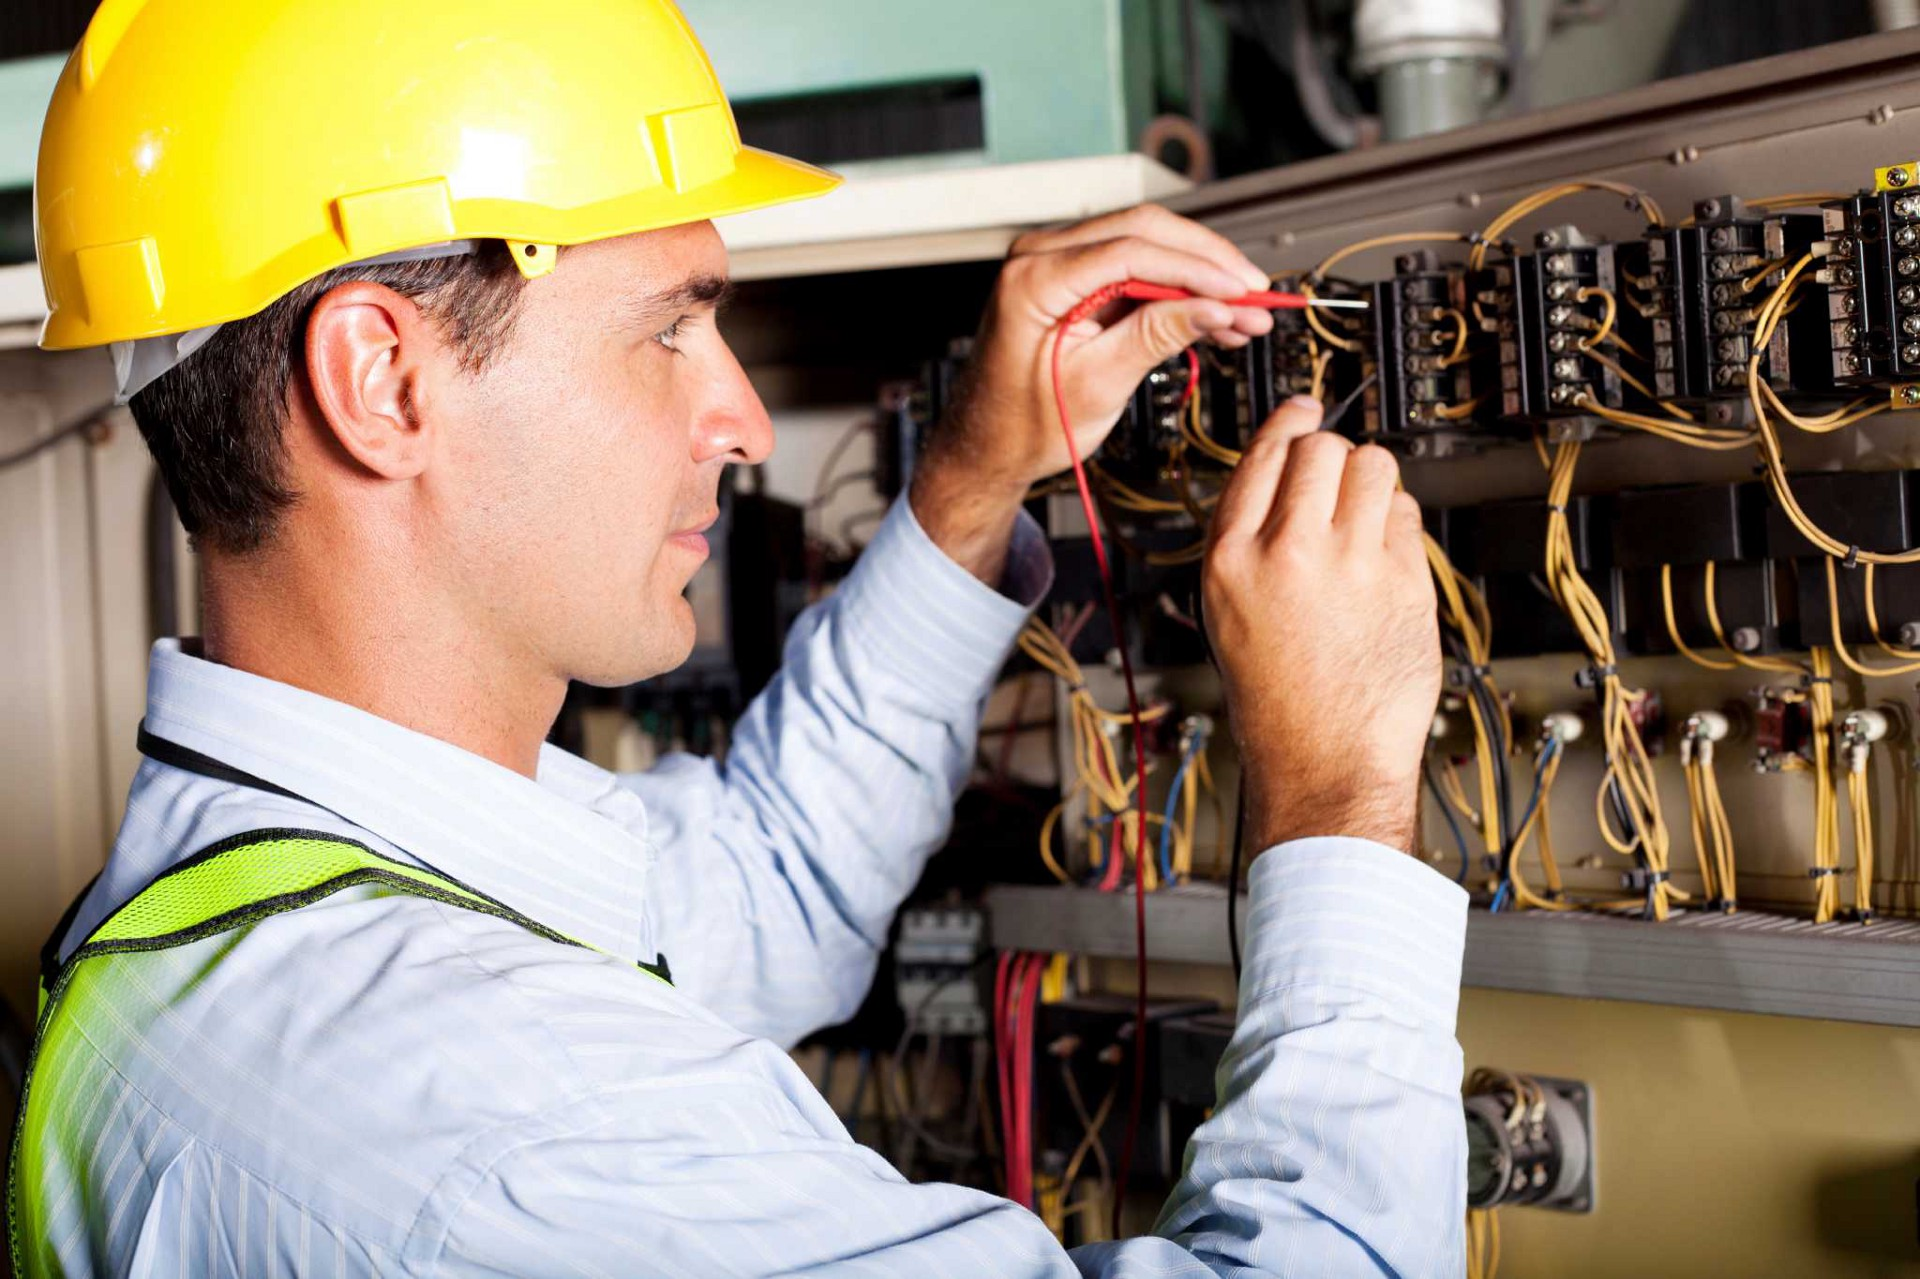 house rewiring test and inspection electrician services in london rh medium com Best Electrician Services in NYC Electrician Working